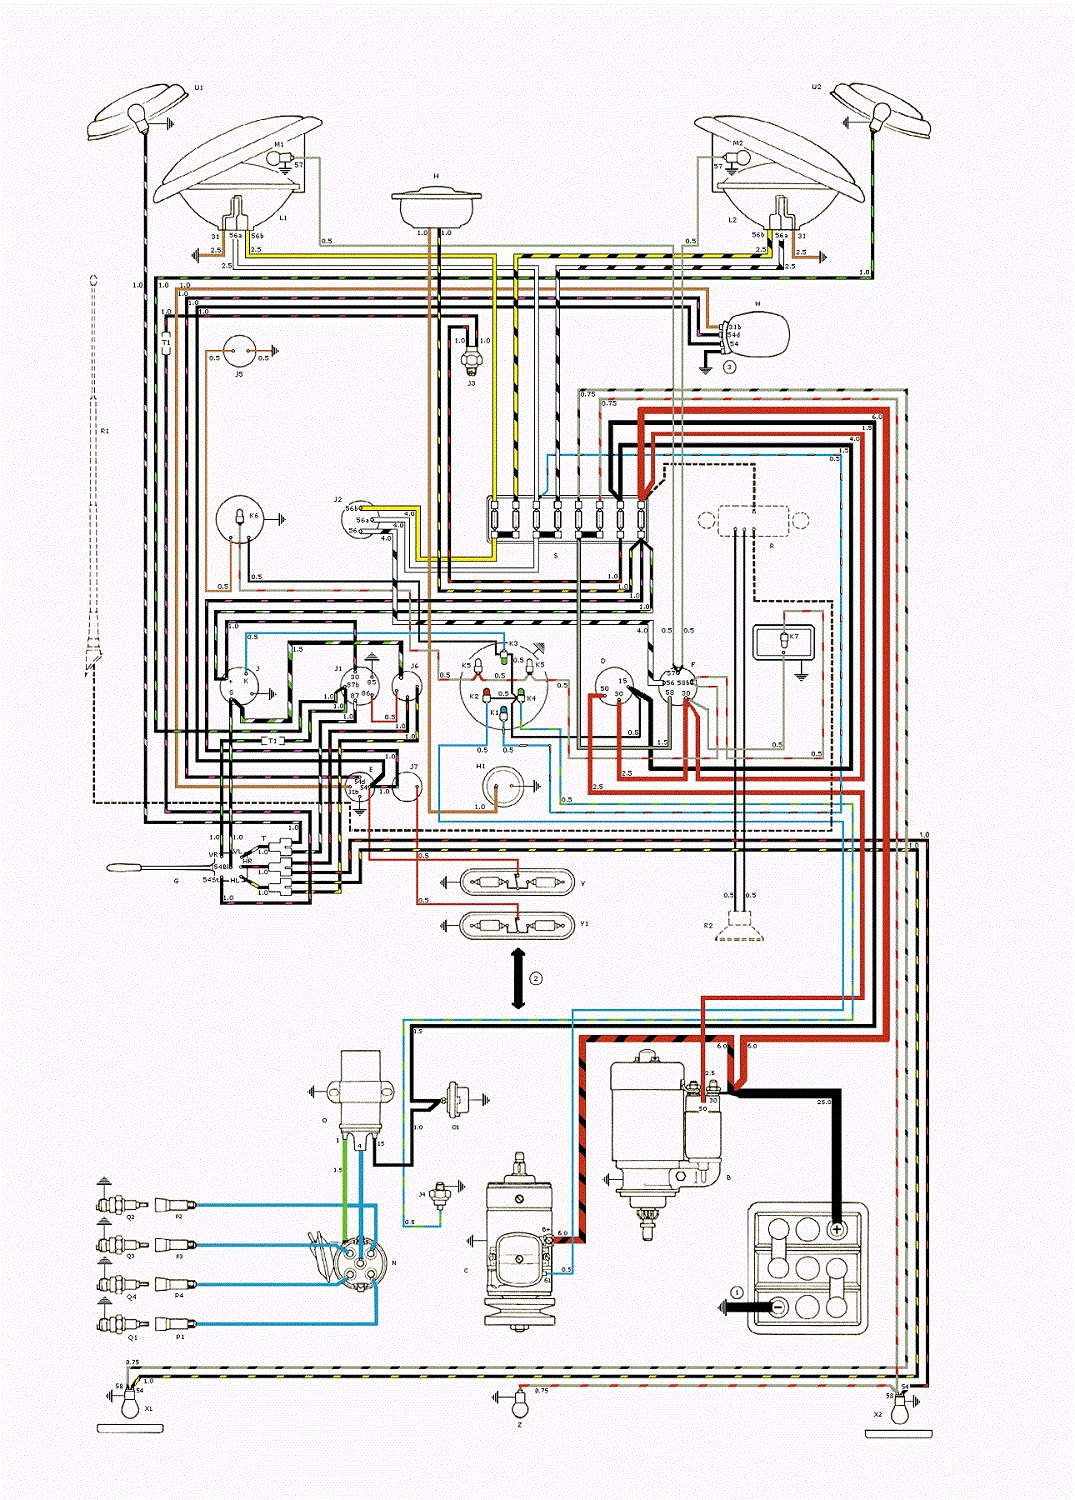 wire schematic wire schematic isuzu ftr #5